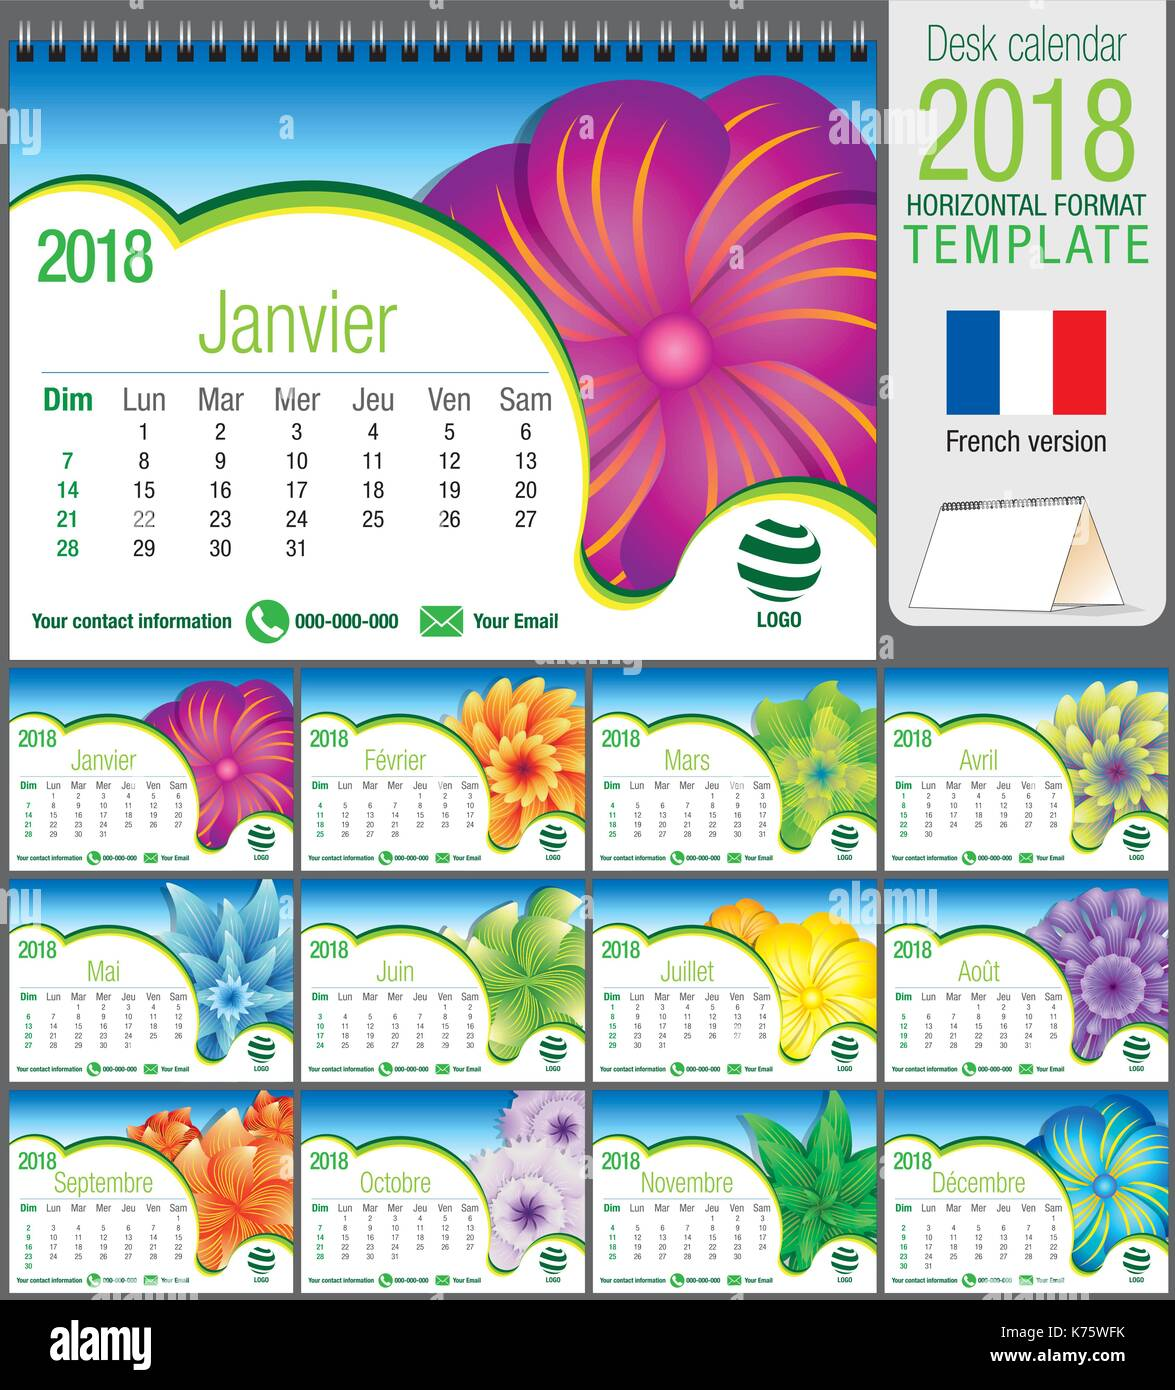 Desk Triangle Calendar 2018 Template With Abstract Floral